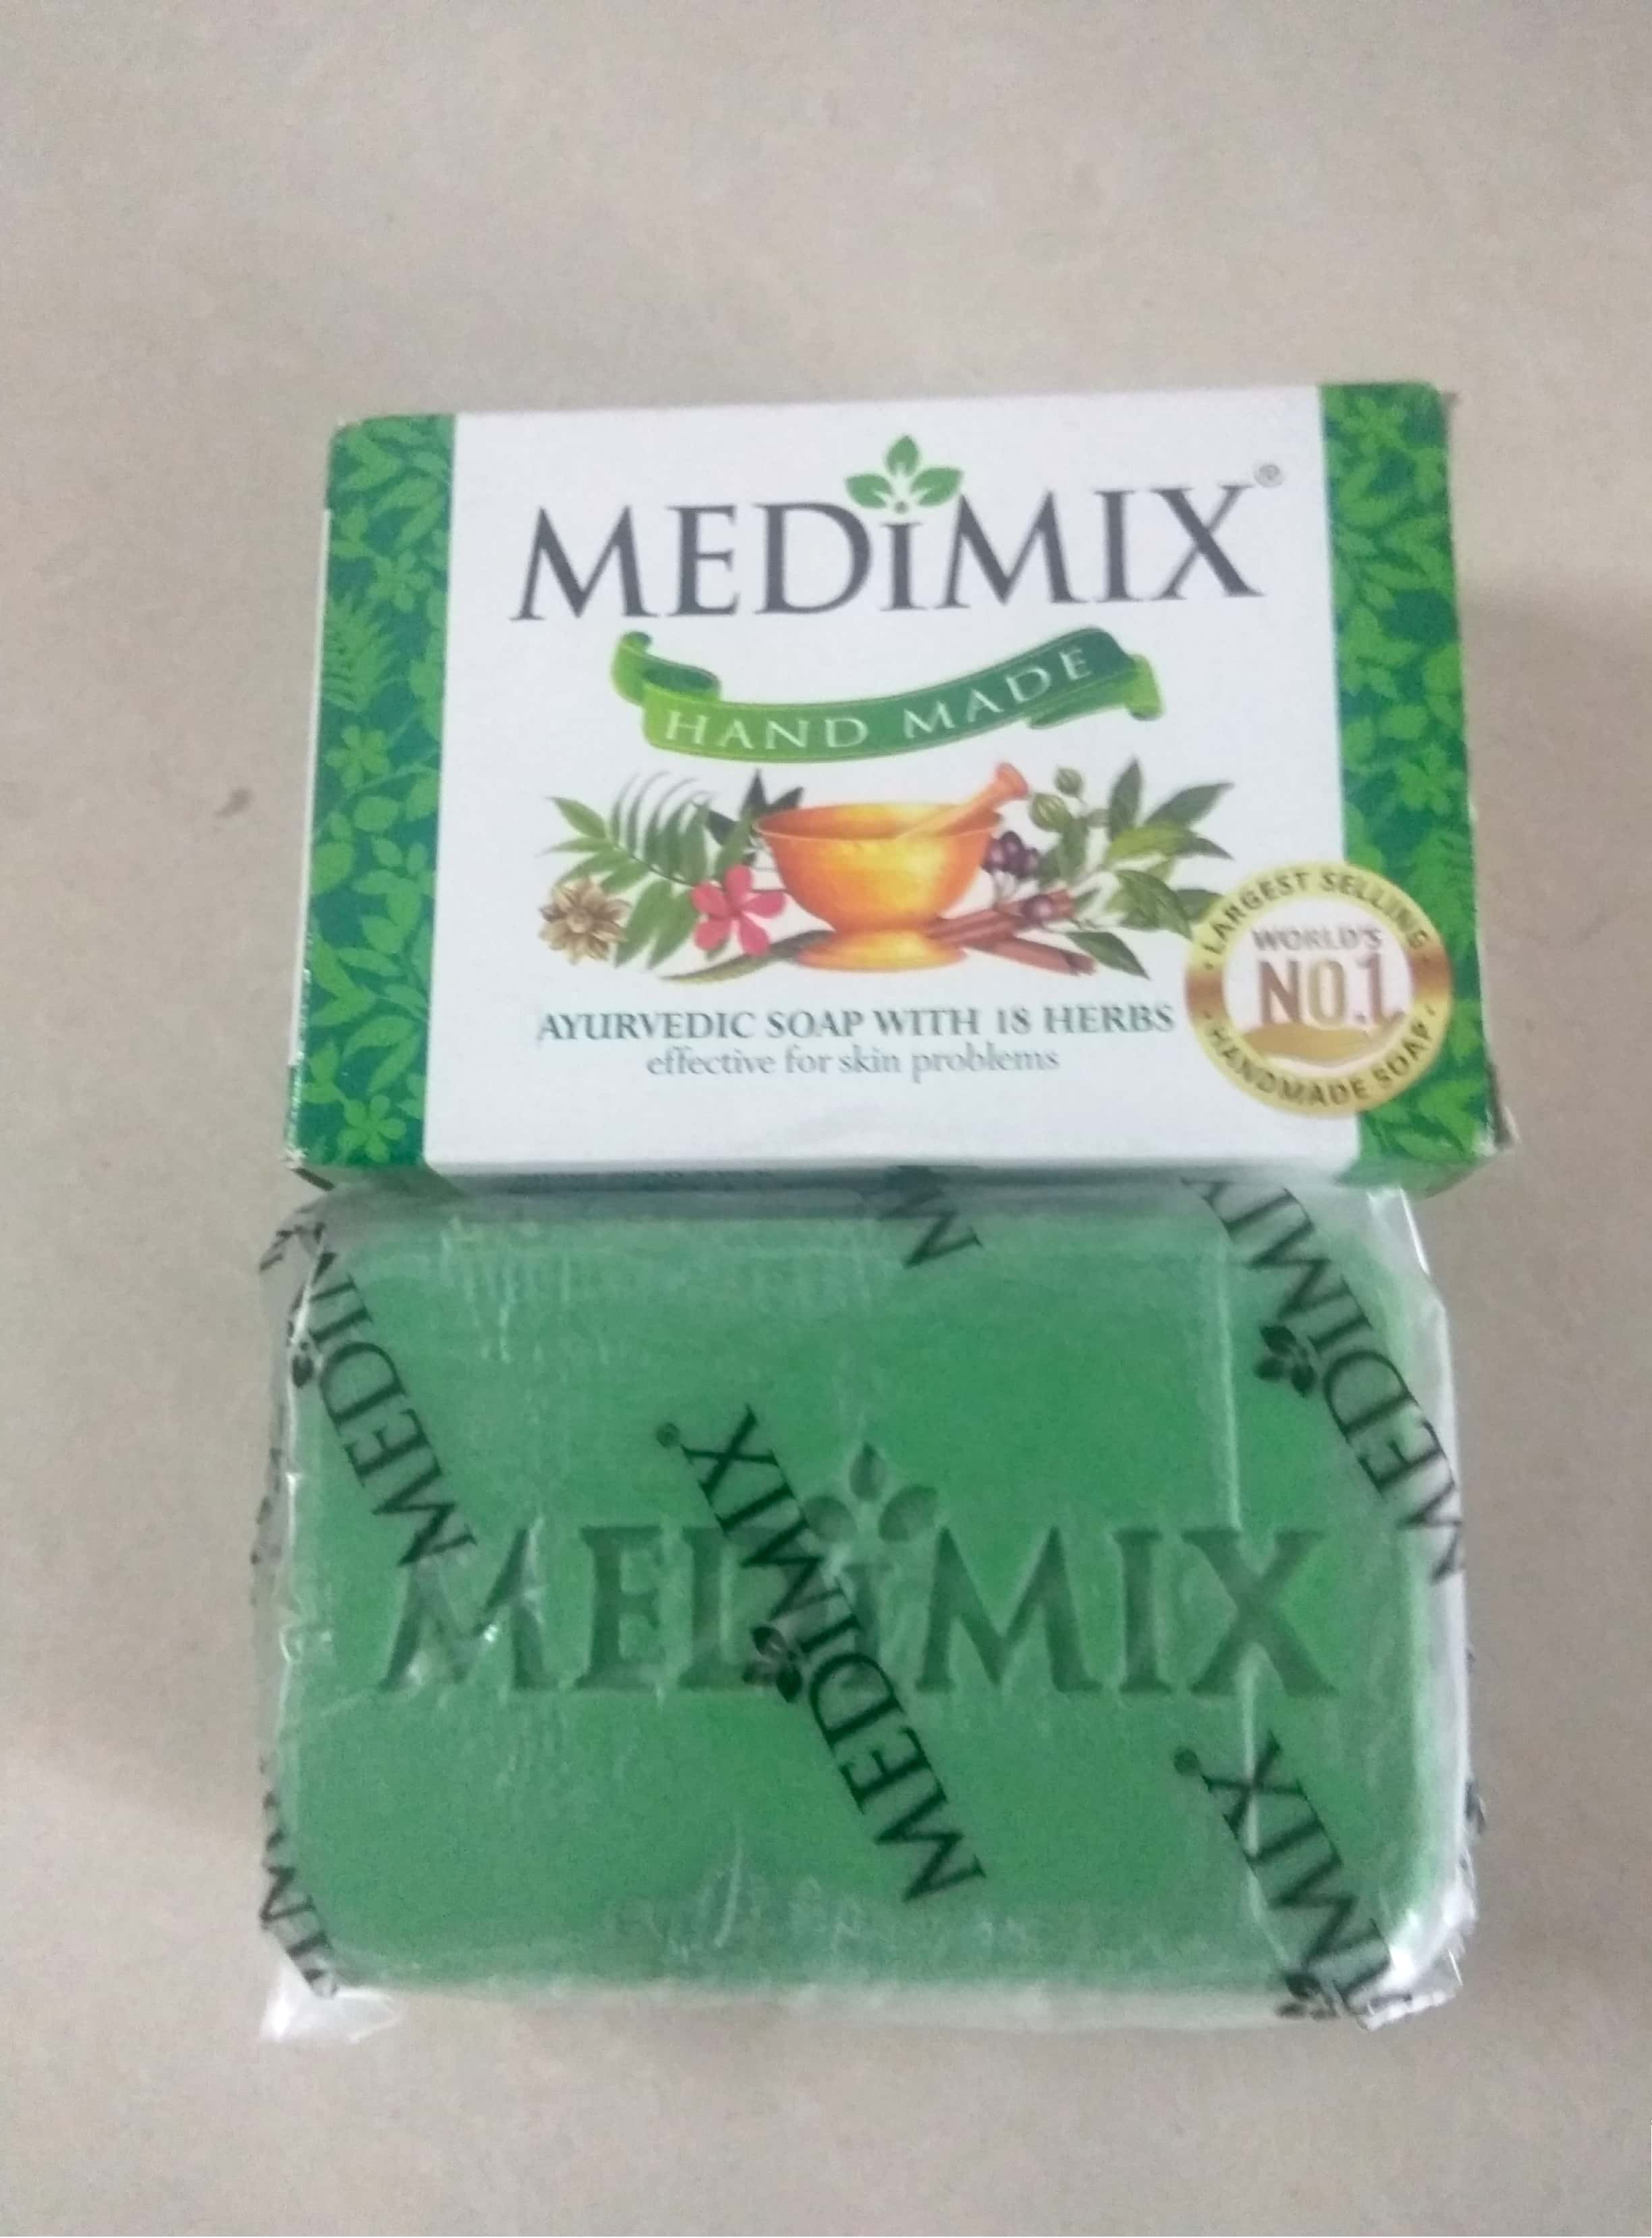 Medimix Ayurvedic 18 Herb Soap pic 1-Herbal product-By stylecp